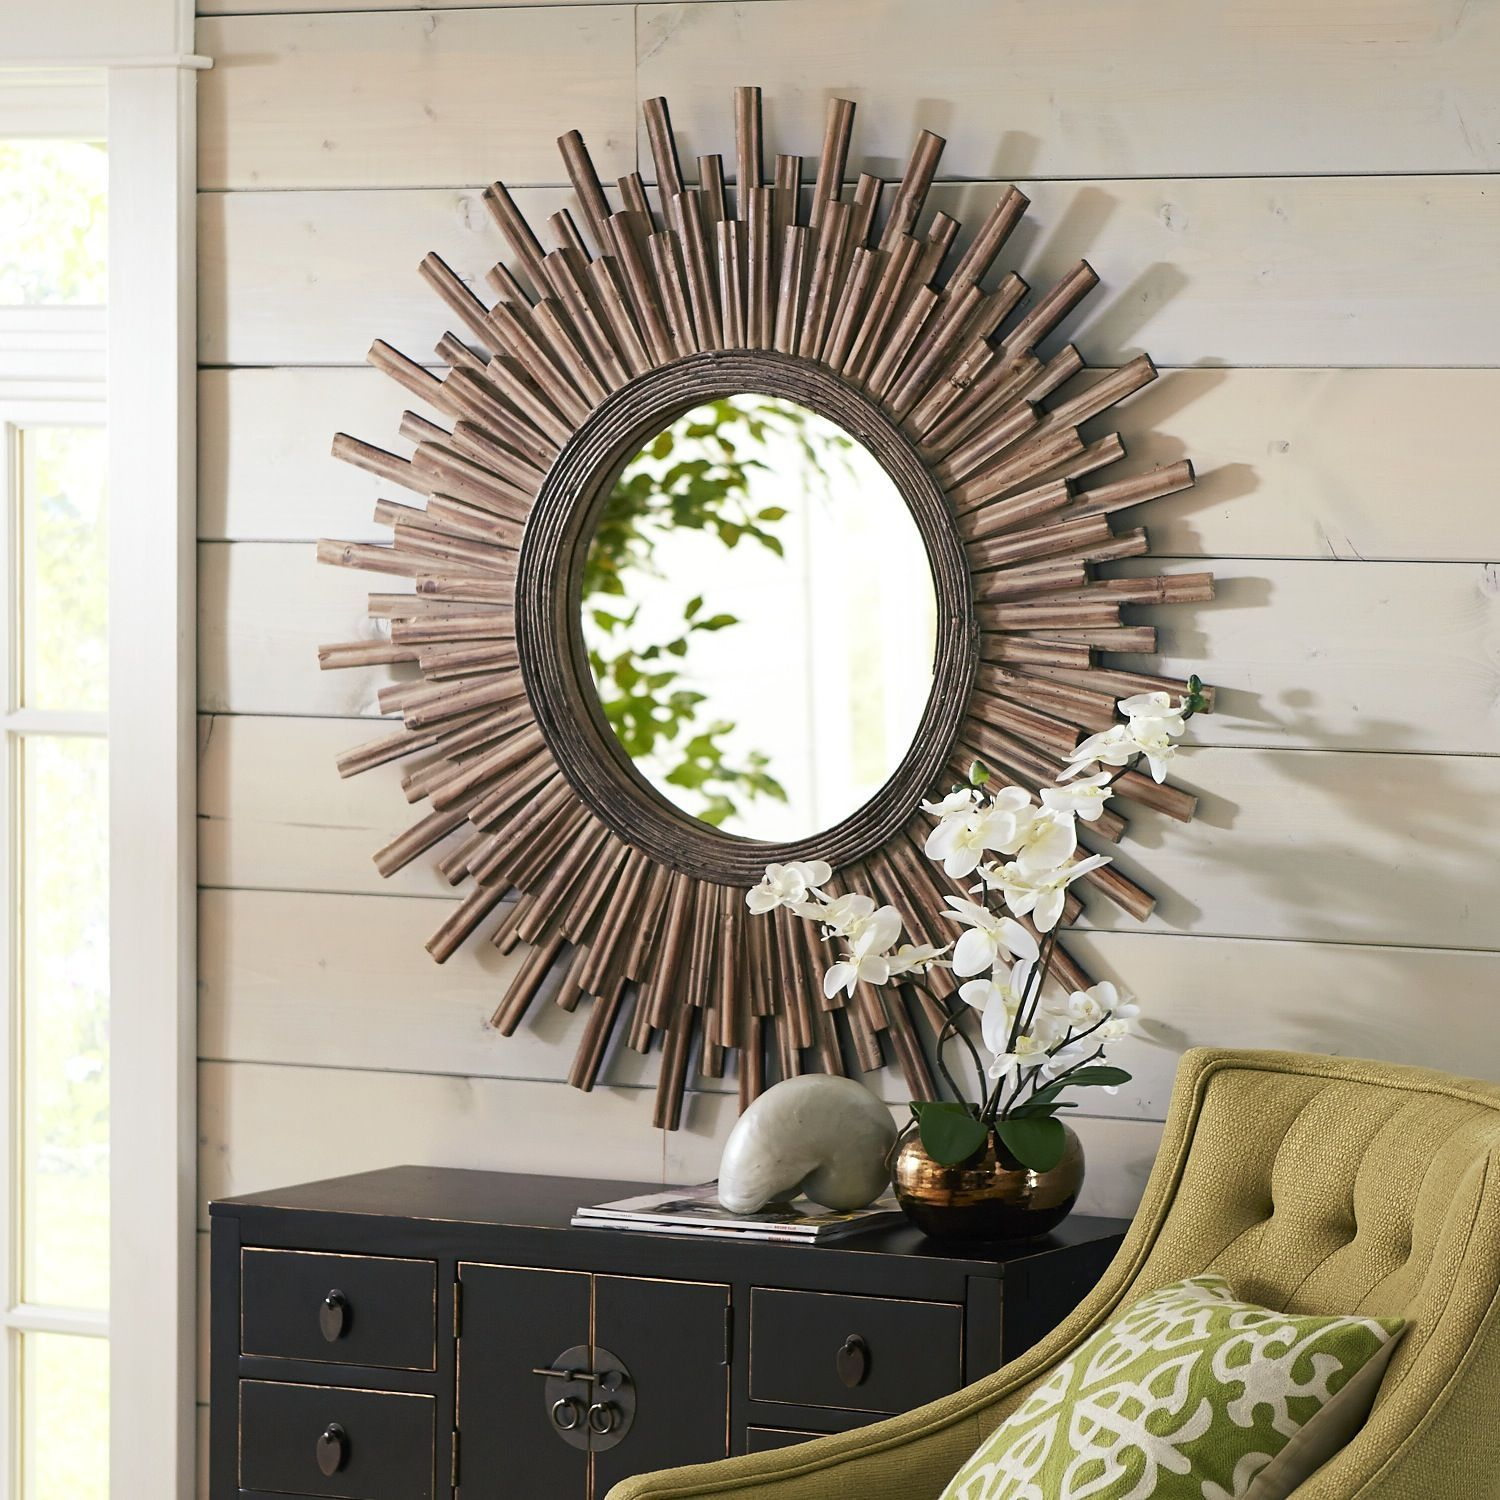 Wood Sunburst Mirror   Pier 1 Imports  This mirror would look stunning in  your home. Canyon 42  Round Mirror   Entry ways  Dining rooms and The o jays